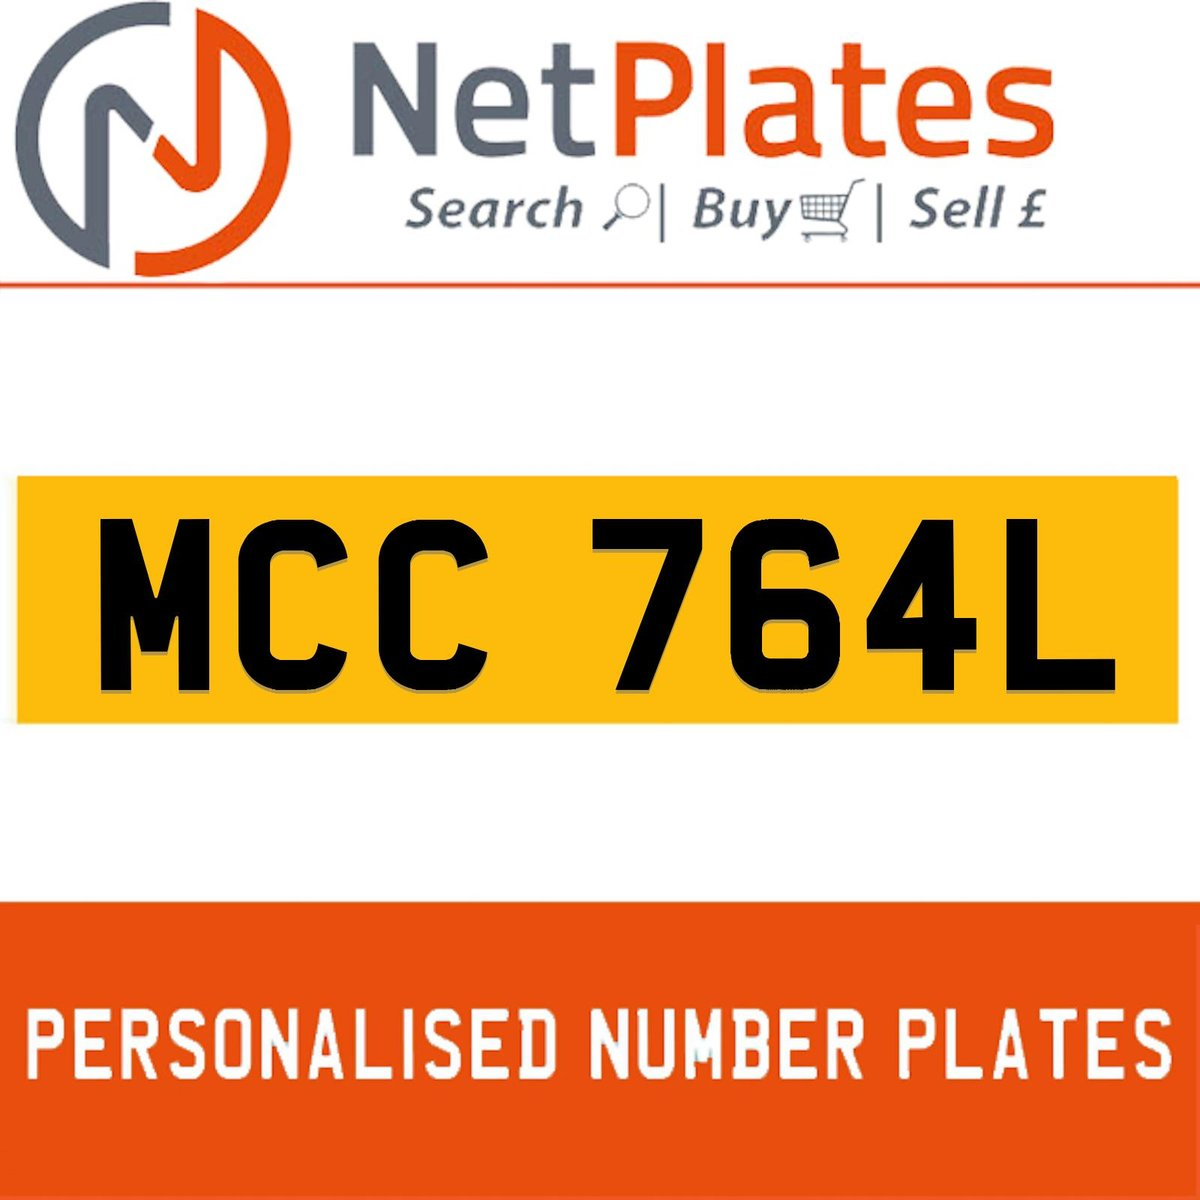 1900 MCC 764L PERSONALISED PRIVATE CHERISHED DVLA NUMBER PLATE For Sale (picture 1 of 5)